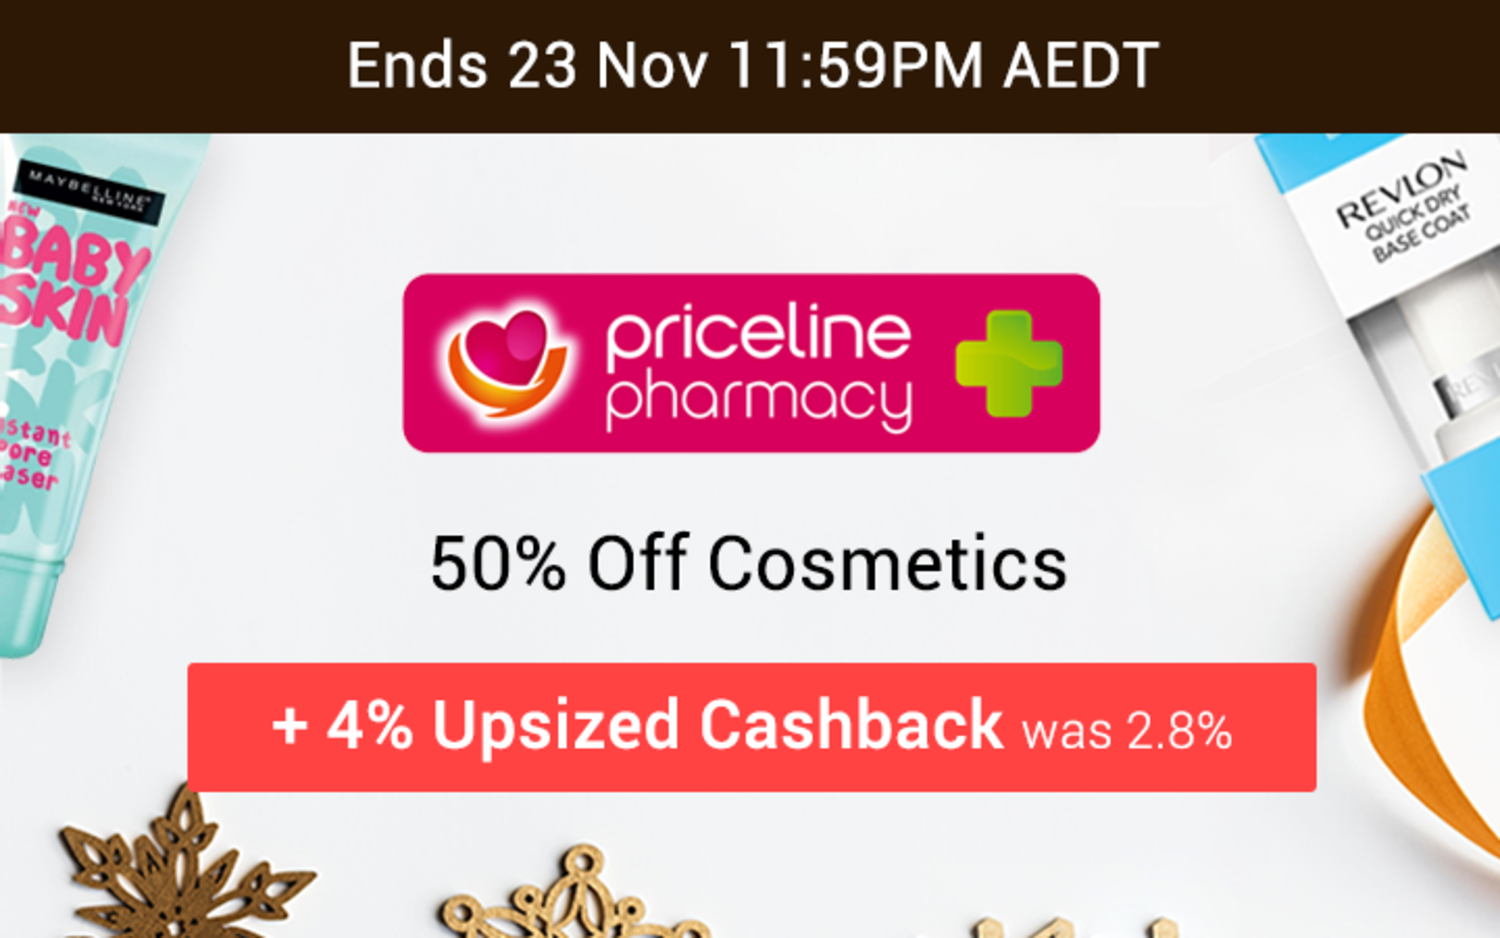 Priceline Pharmacy - 50% off Cosmetics - Black Friday Cyber Monday BFCM